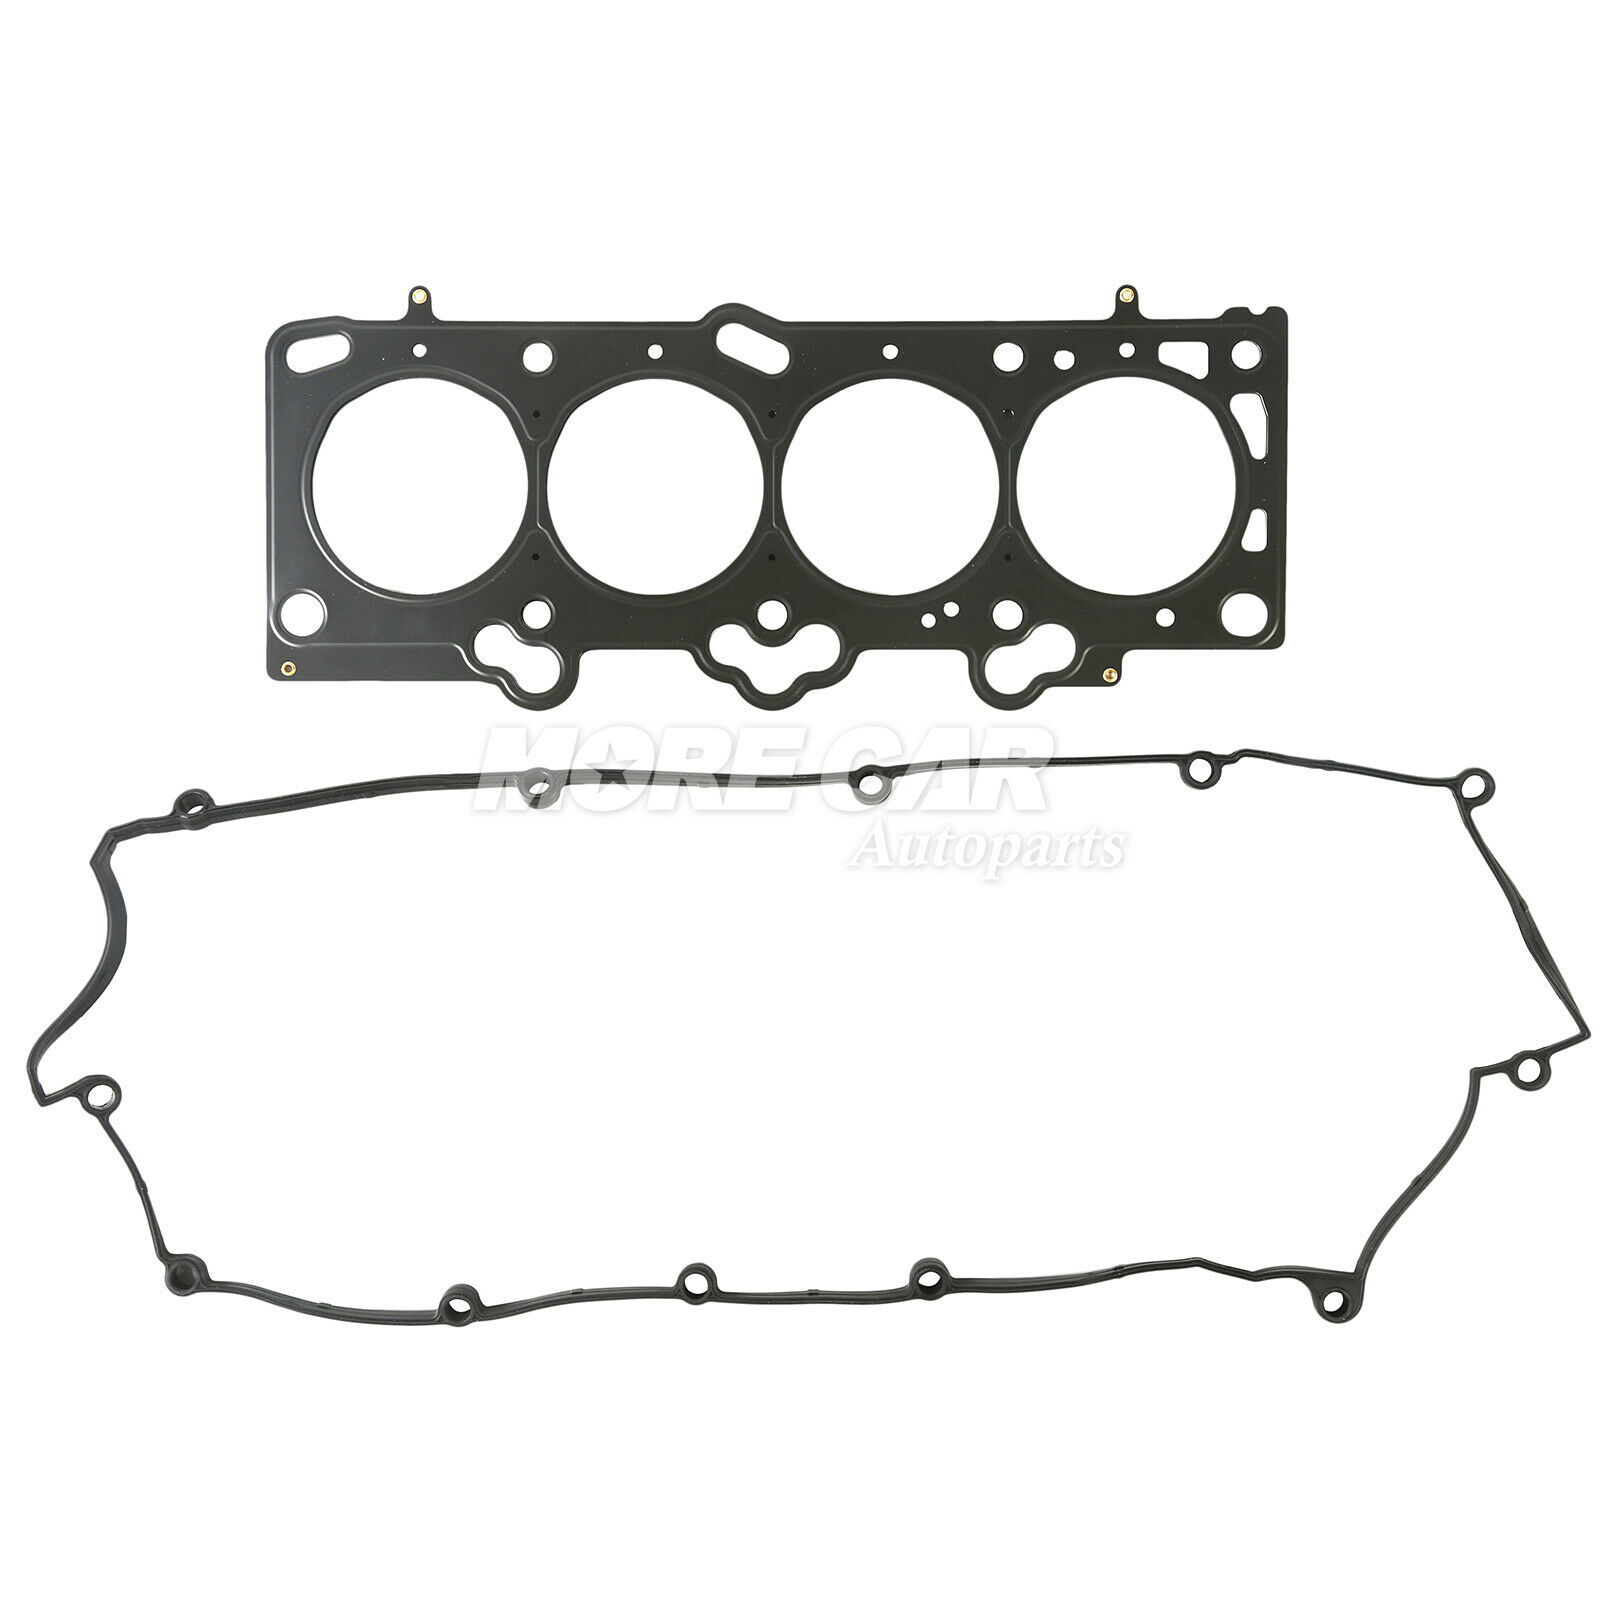 MLS Head Gasket Set Fit 03-07 Hyundai Tiburon Tucson